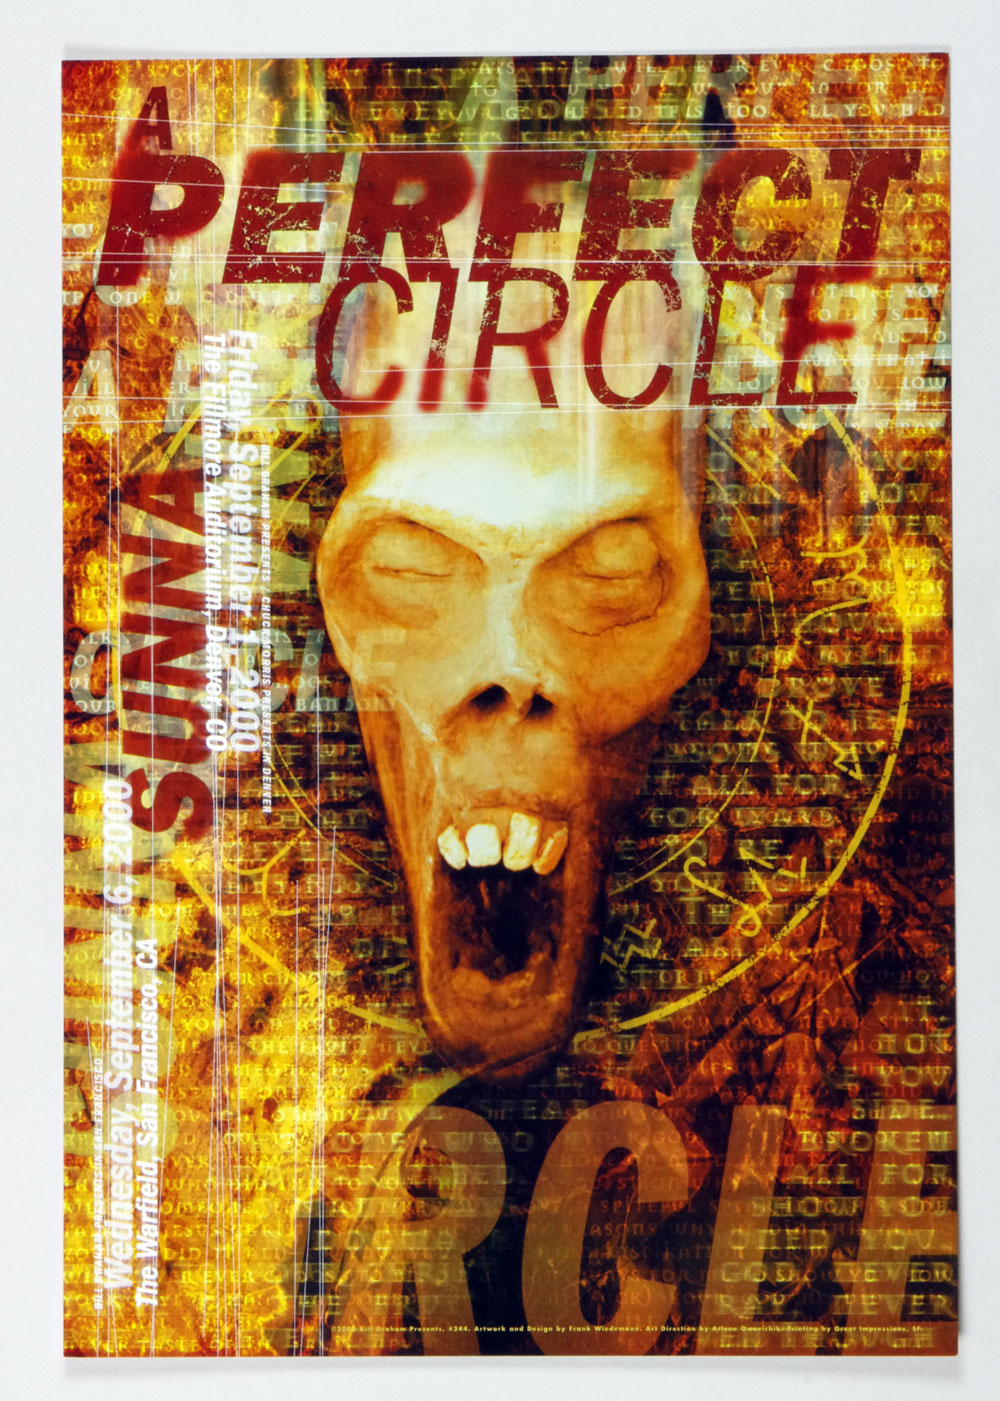 A Perfect Circle Poster 2000 Sep 6 The Warfiled Theatre San Francisco BGP 244